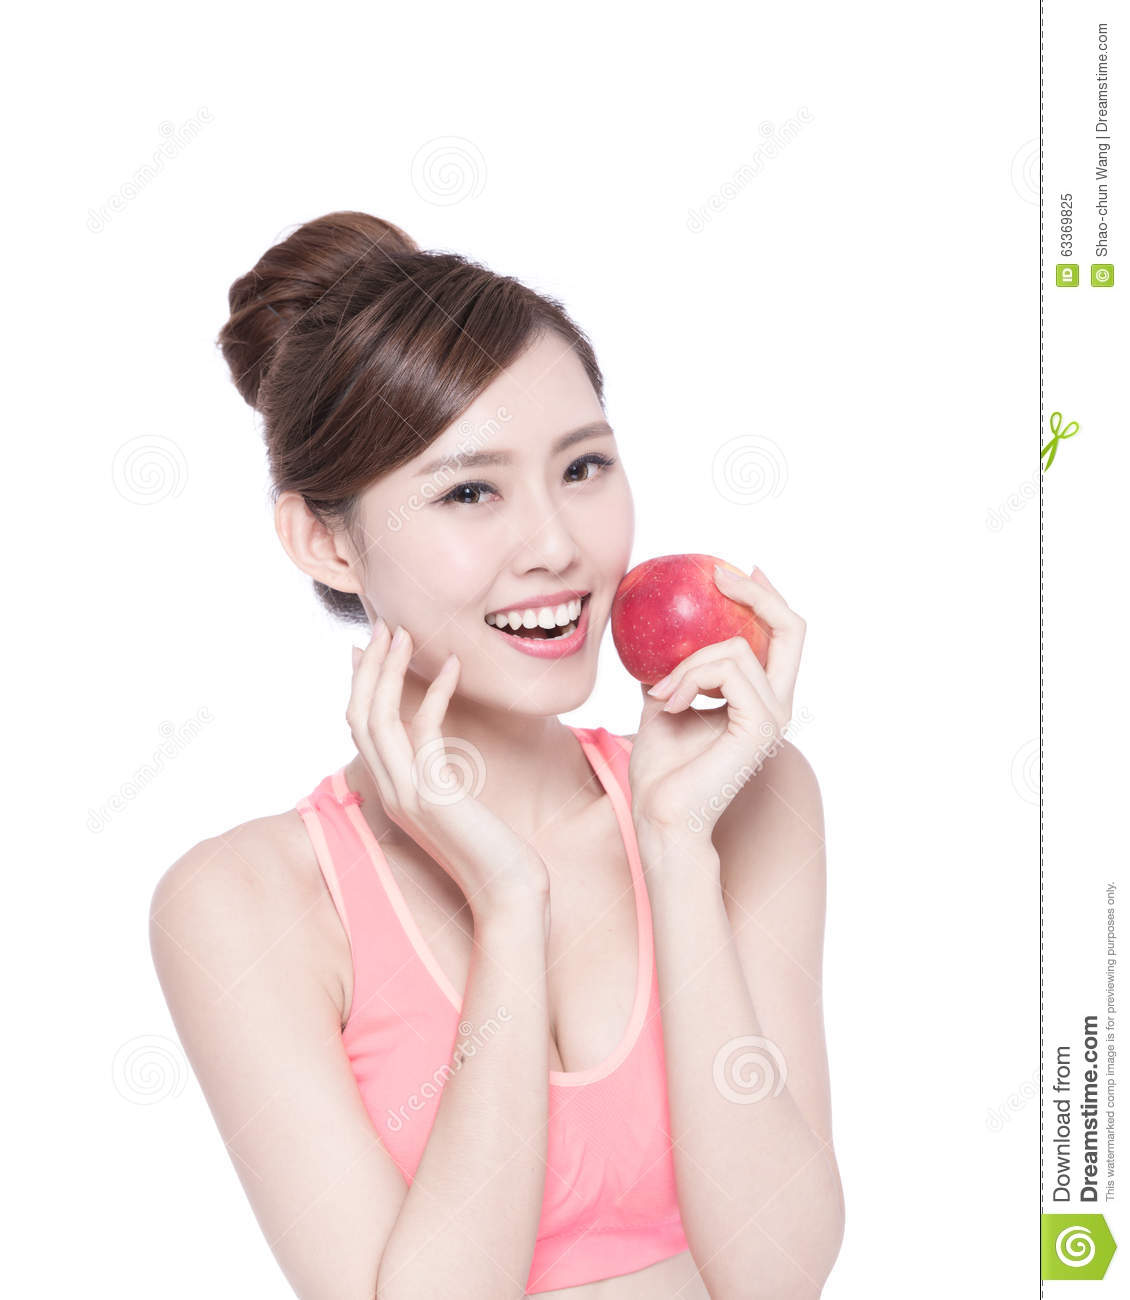 happy-health-woman-show-apple-benefit-to-asian-beauty-63369825.jpg